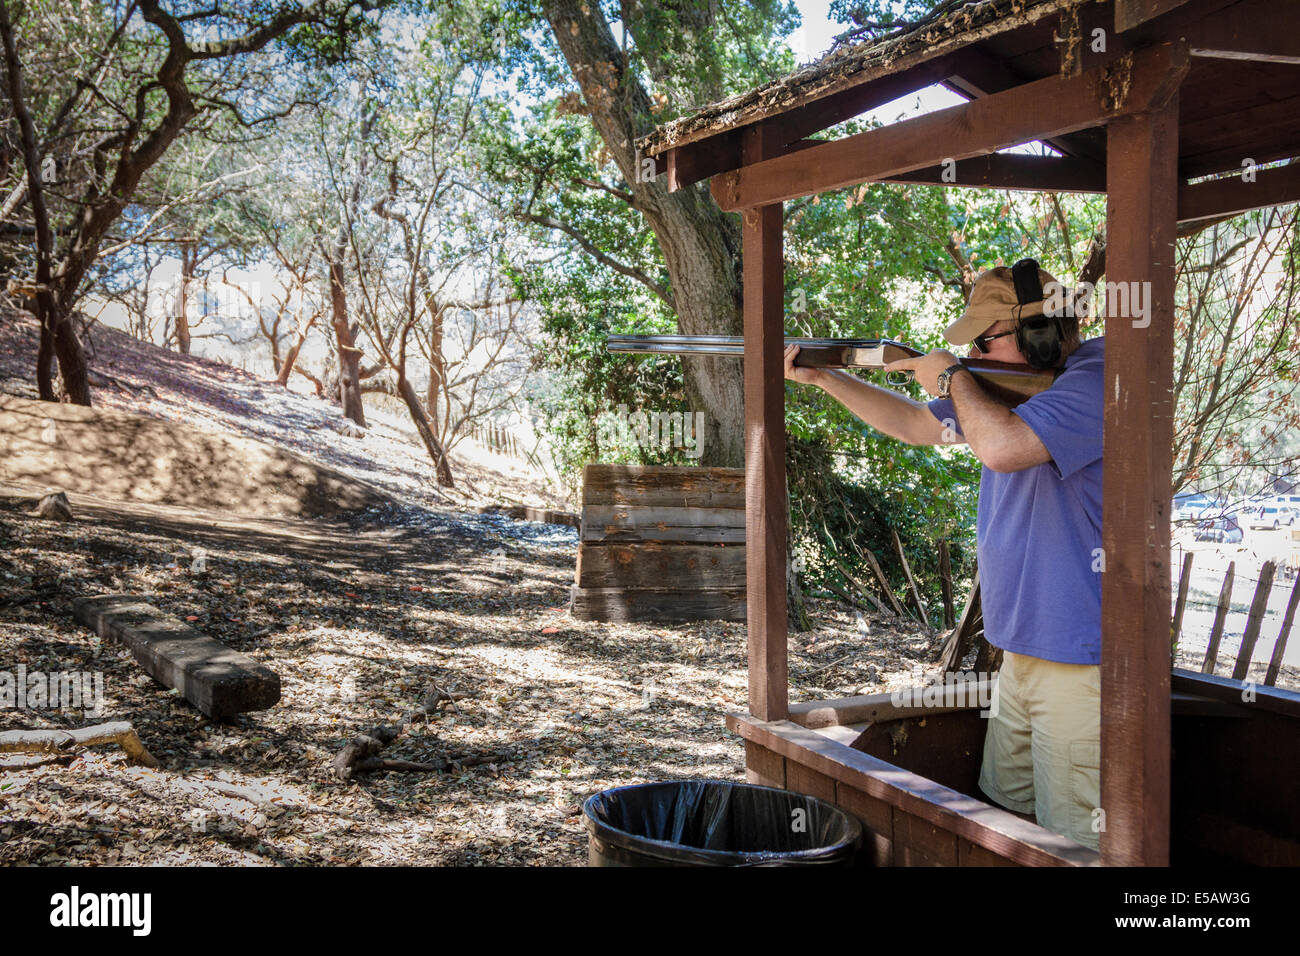 Man shooting sporting clays with his shotgun on a course in the woods in California - Stock Image